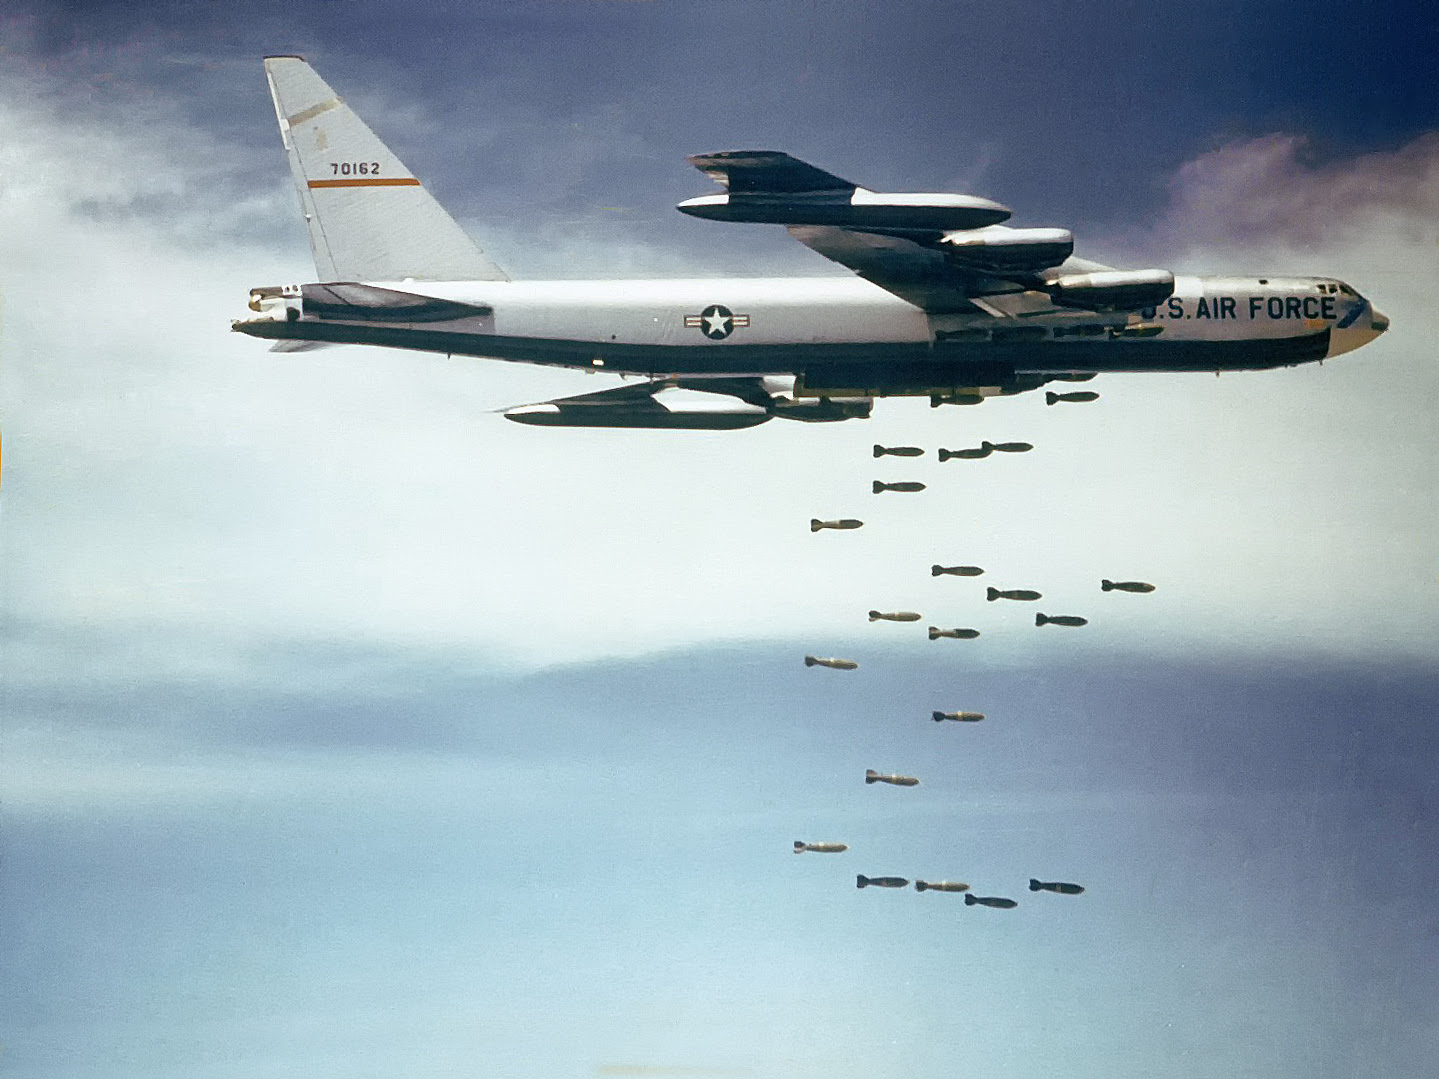 http://upload.wikimedia.org/wikipedia/commons/c/c3/Boeing_B-52_dropping_bombs.jpg